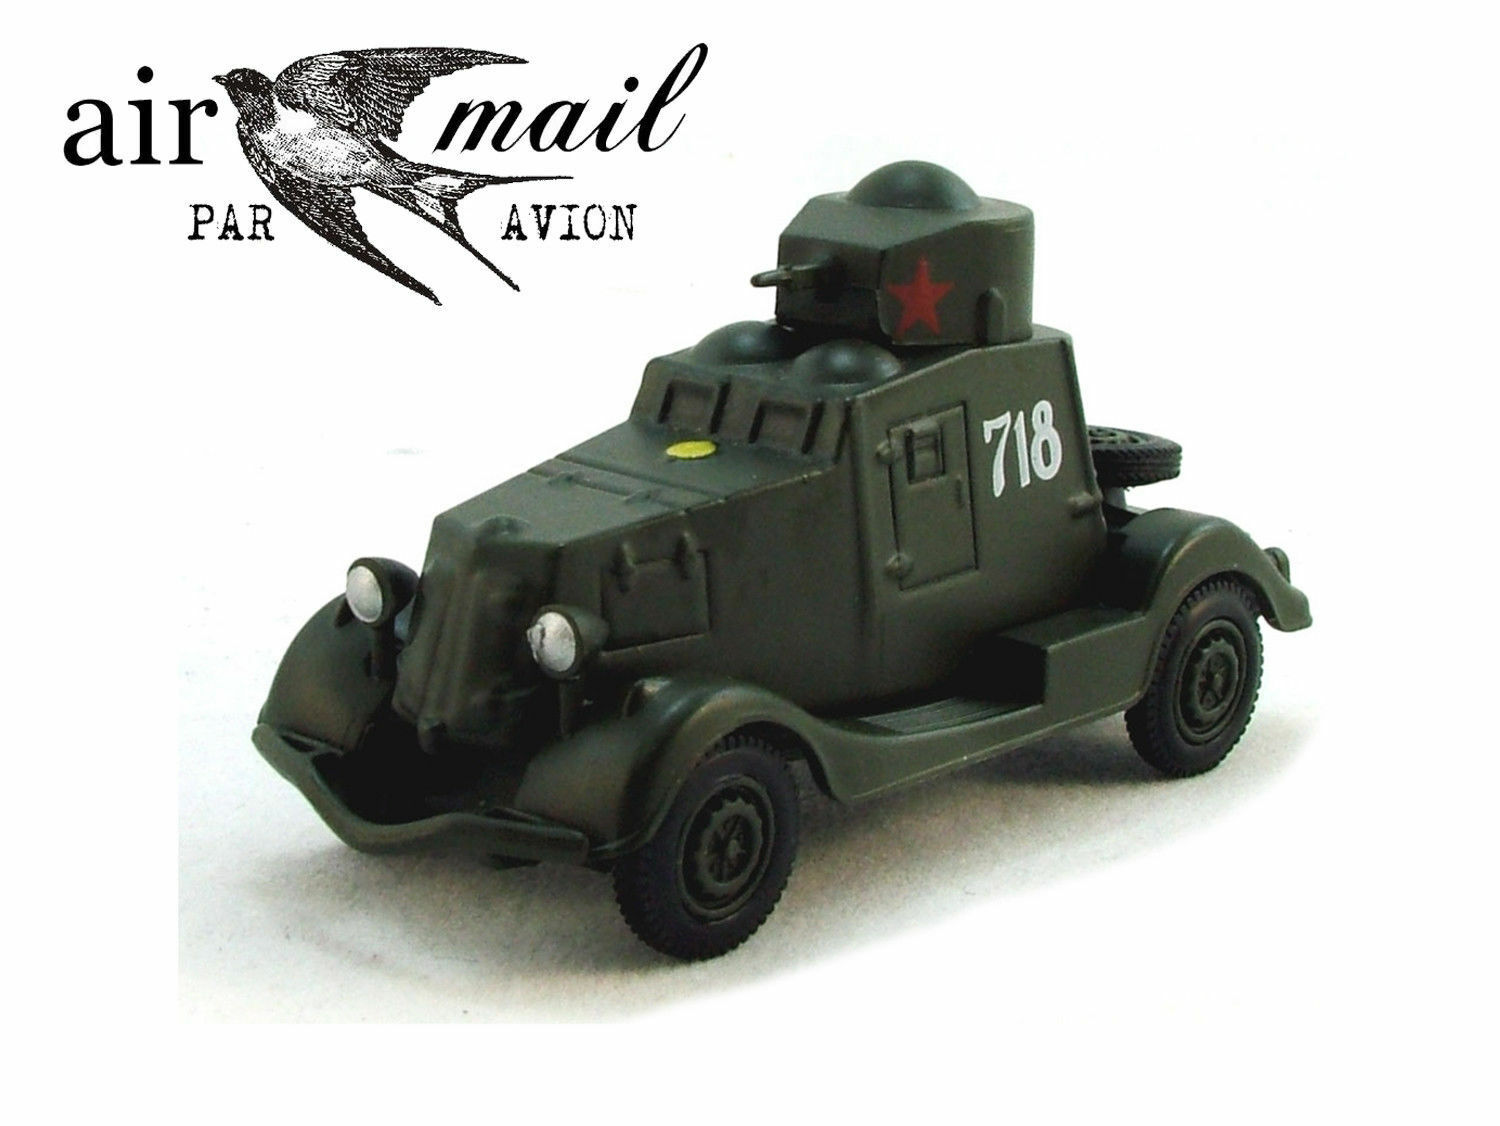 Rare Collection of 5 Soviet Military Vehicles 1 72 Scale Collectible Model Cars